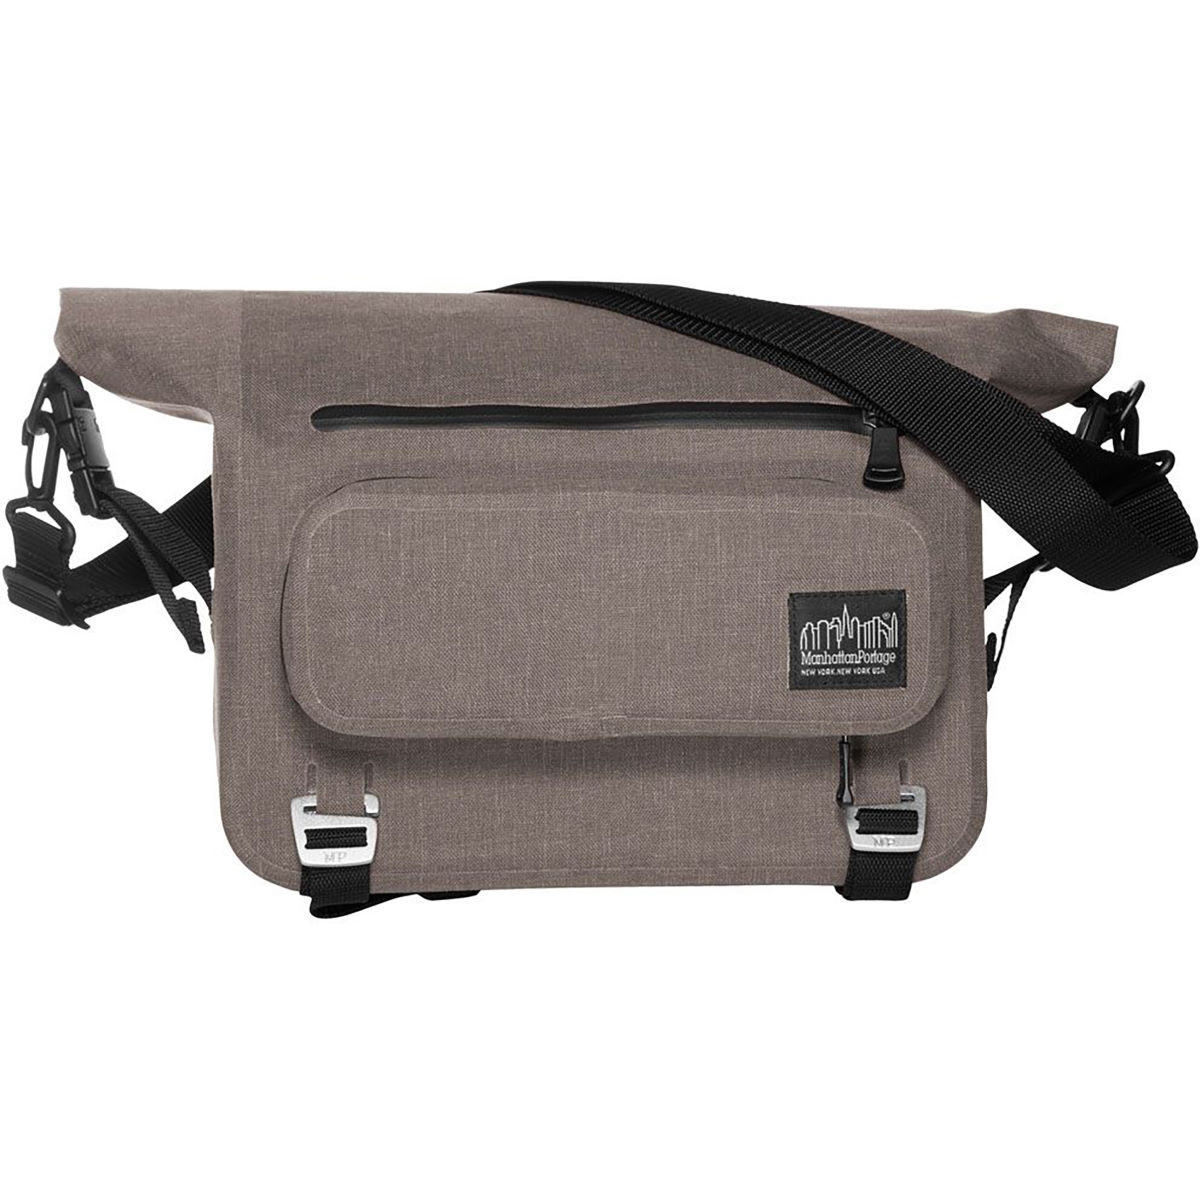 Manhattan Portage Harbour Trunk Bag - Alforjas